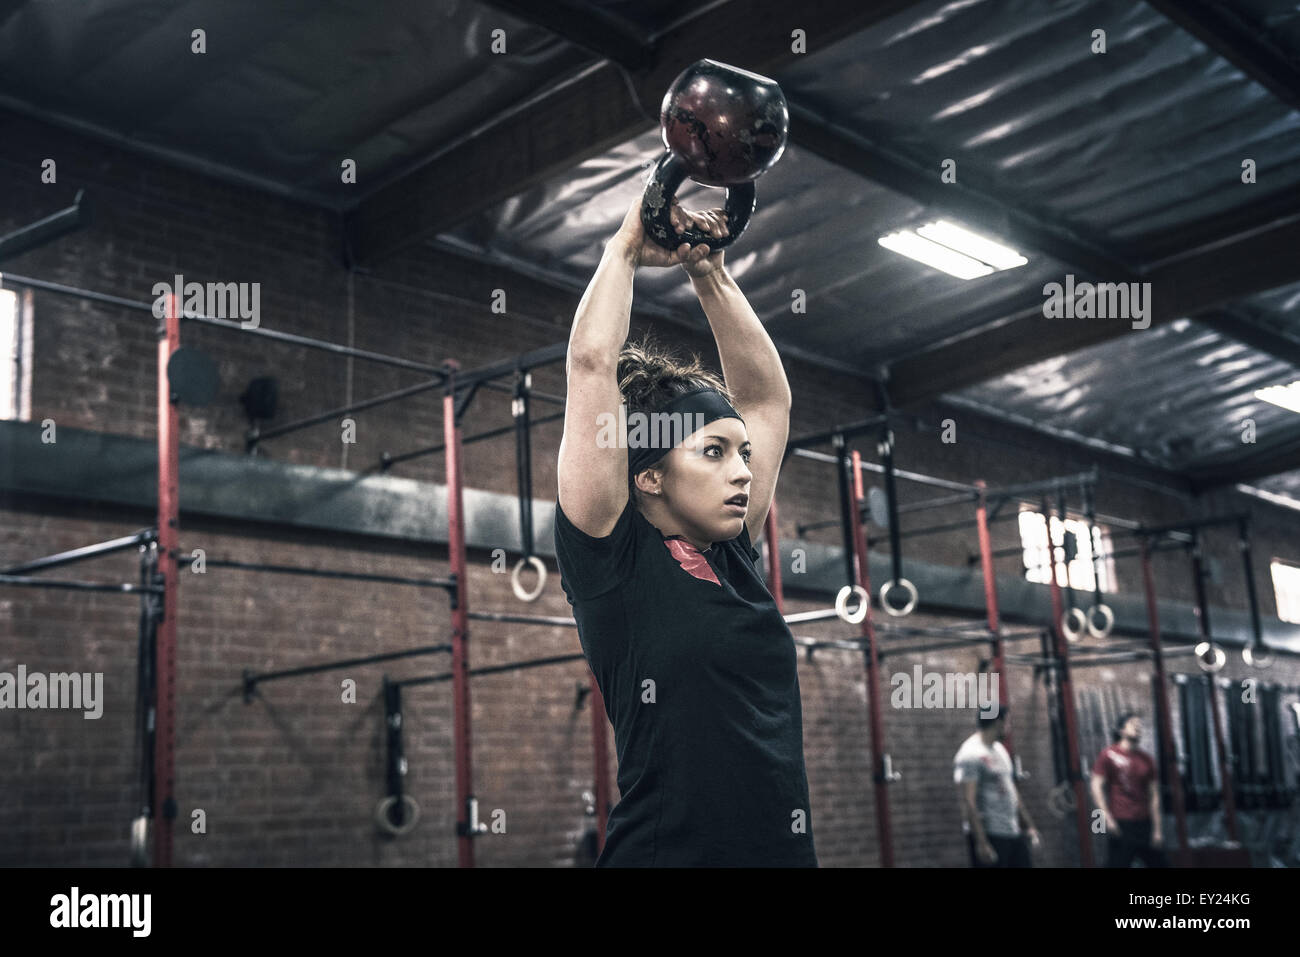 Young woman holding up électrique bells in gym Photo Stock